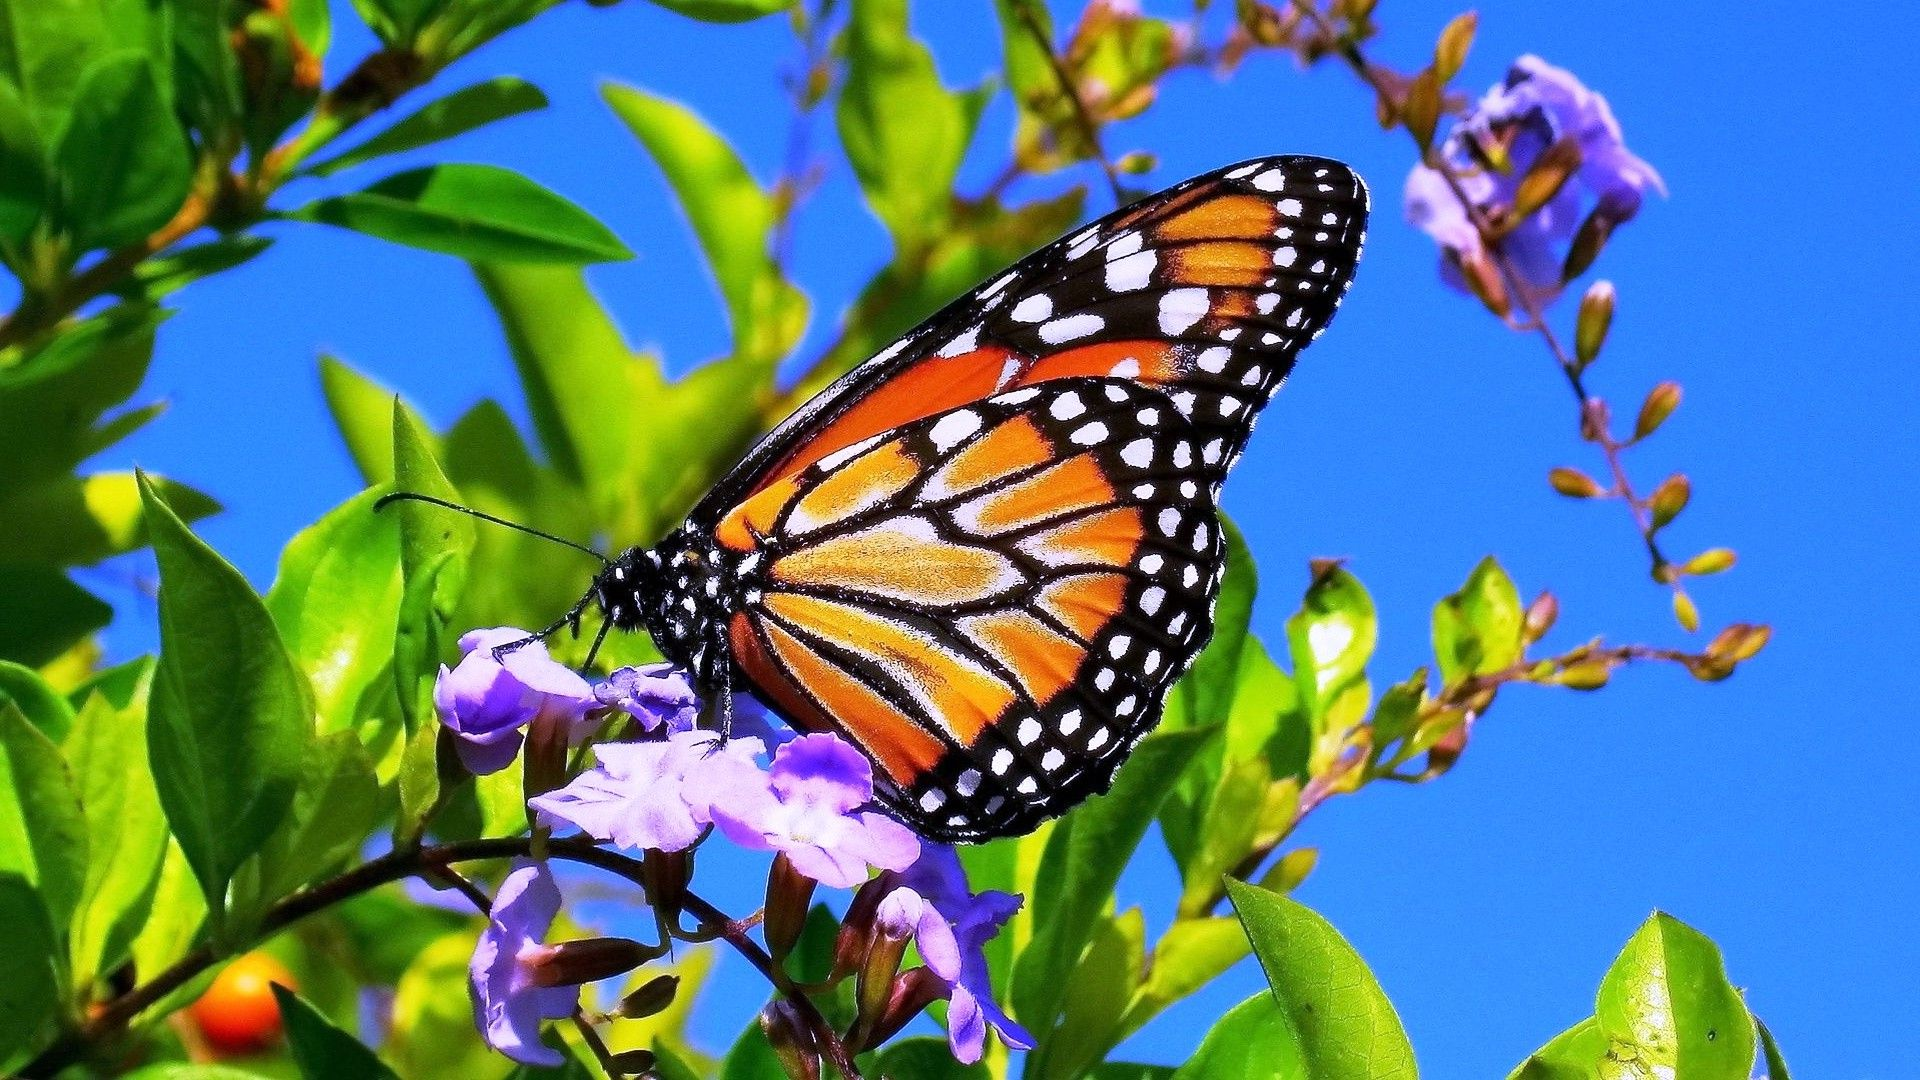 Spring Butterfly Spring Flowers And Butterflies Wallpaper Spring